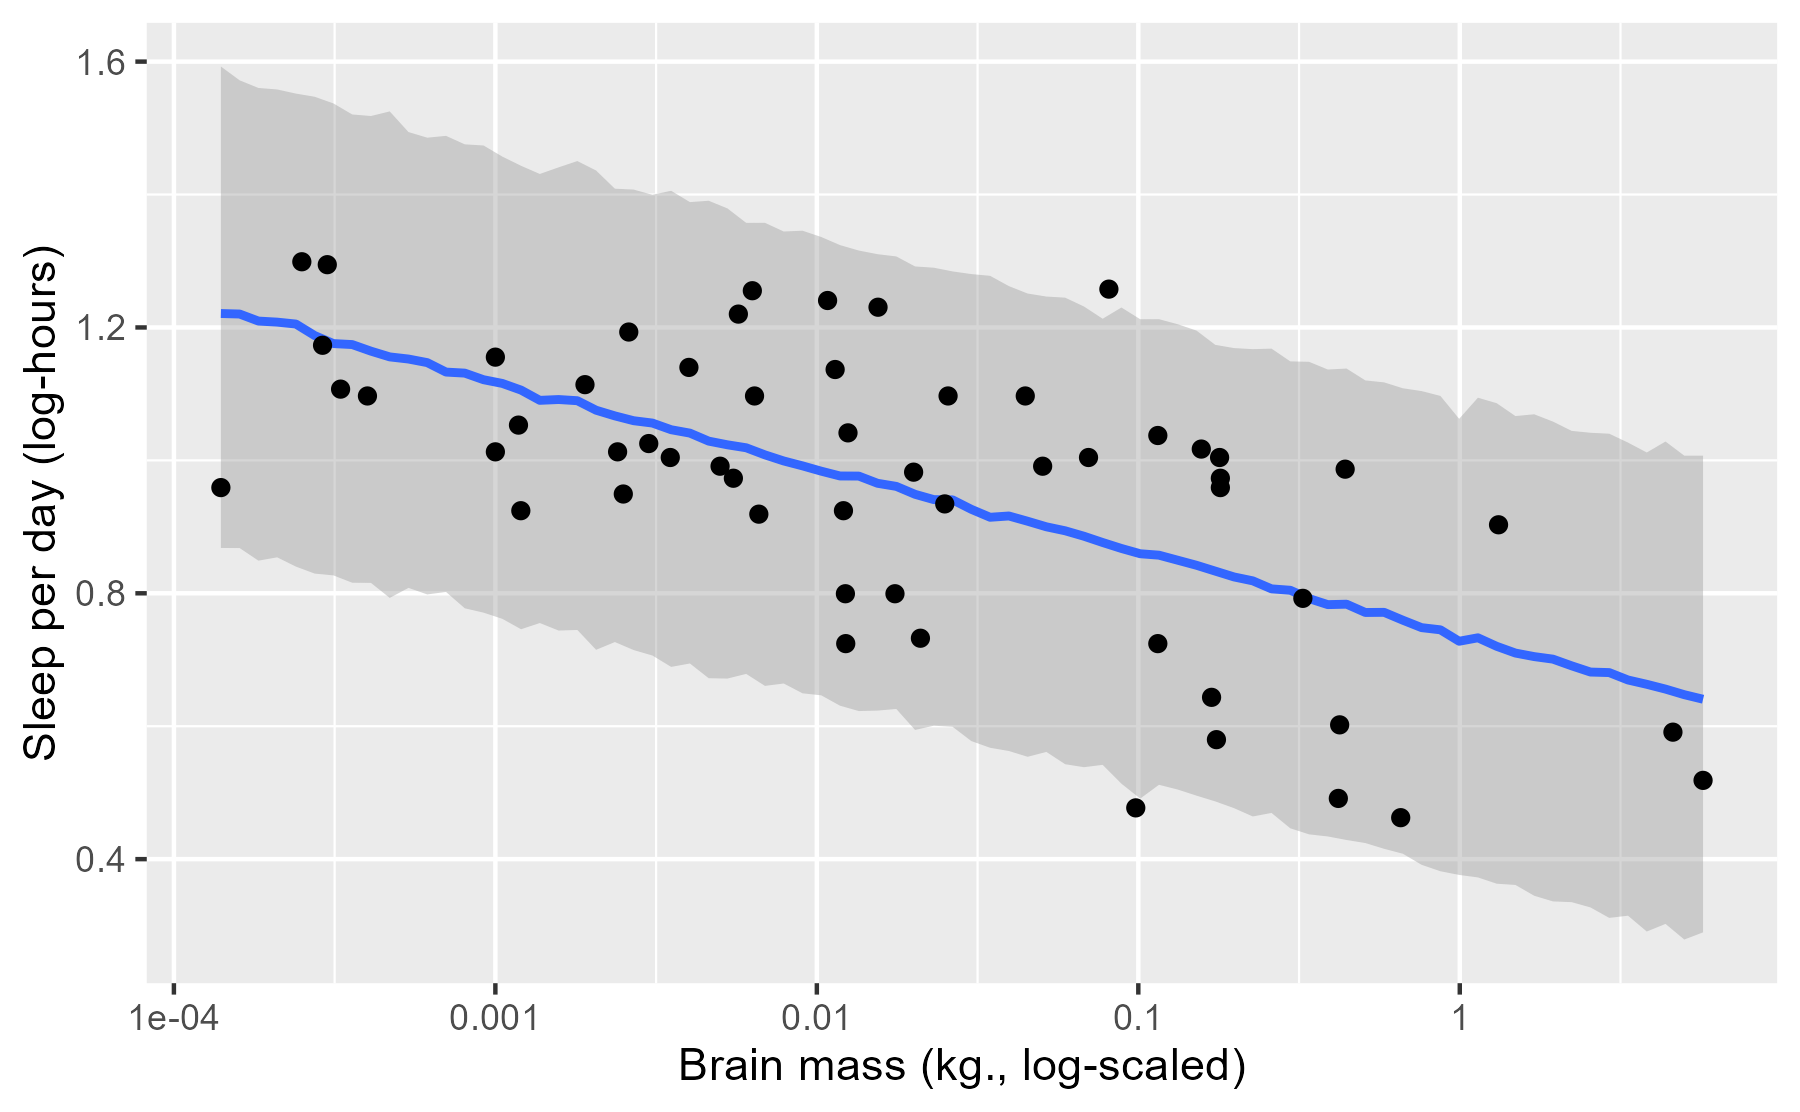 Brain mass by sleep hours, log-10 scale, plus the median and 95% interval for posterior predicted observations.